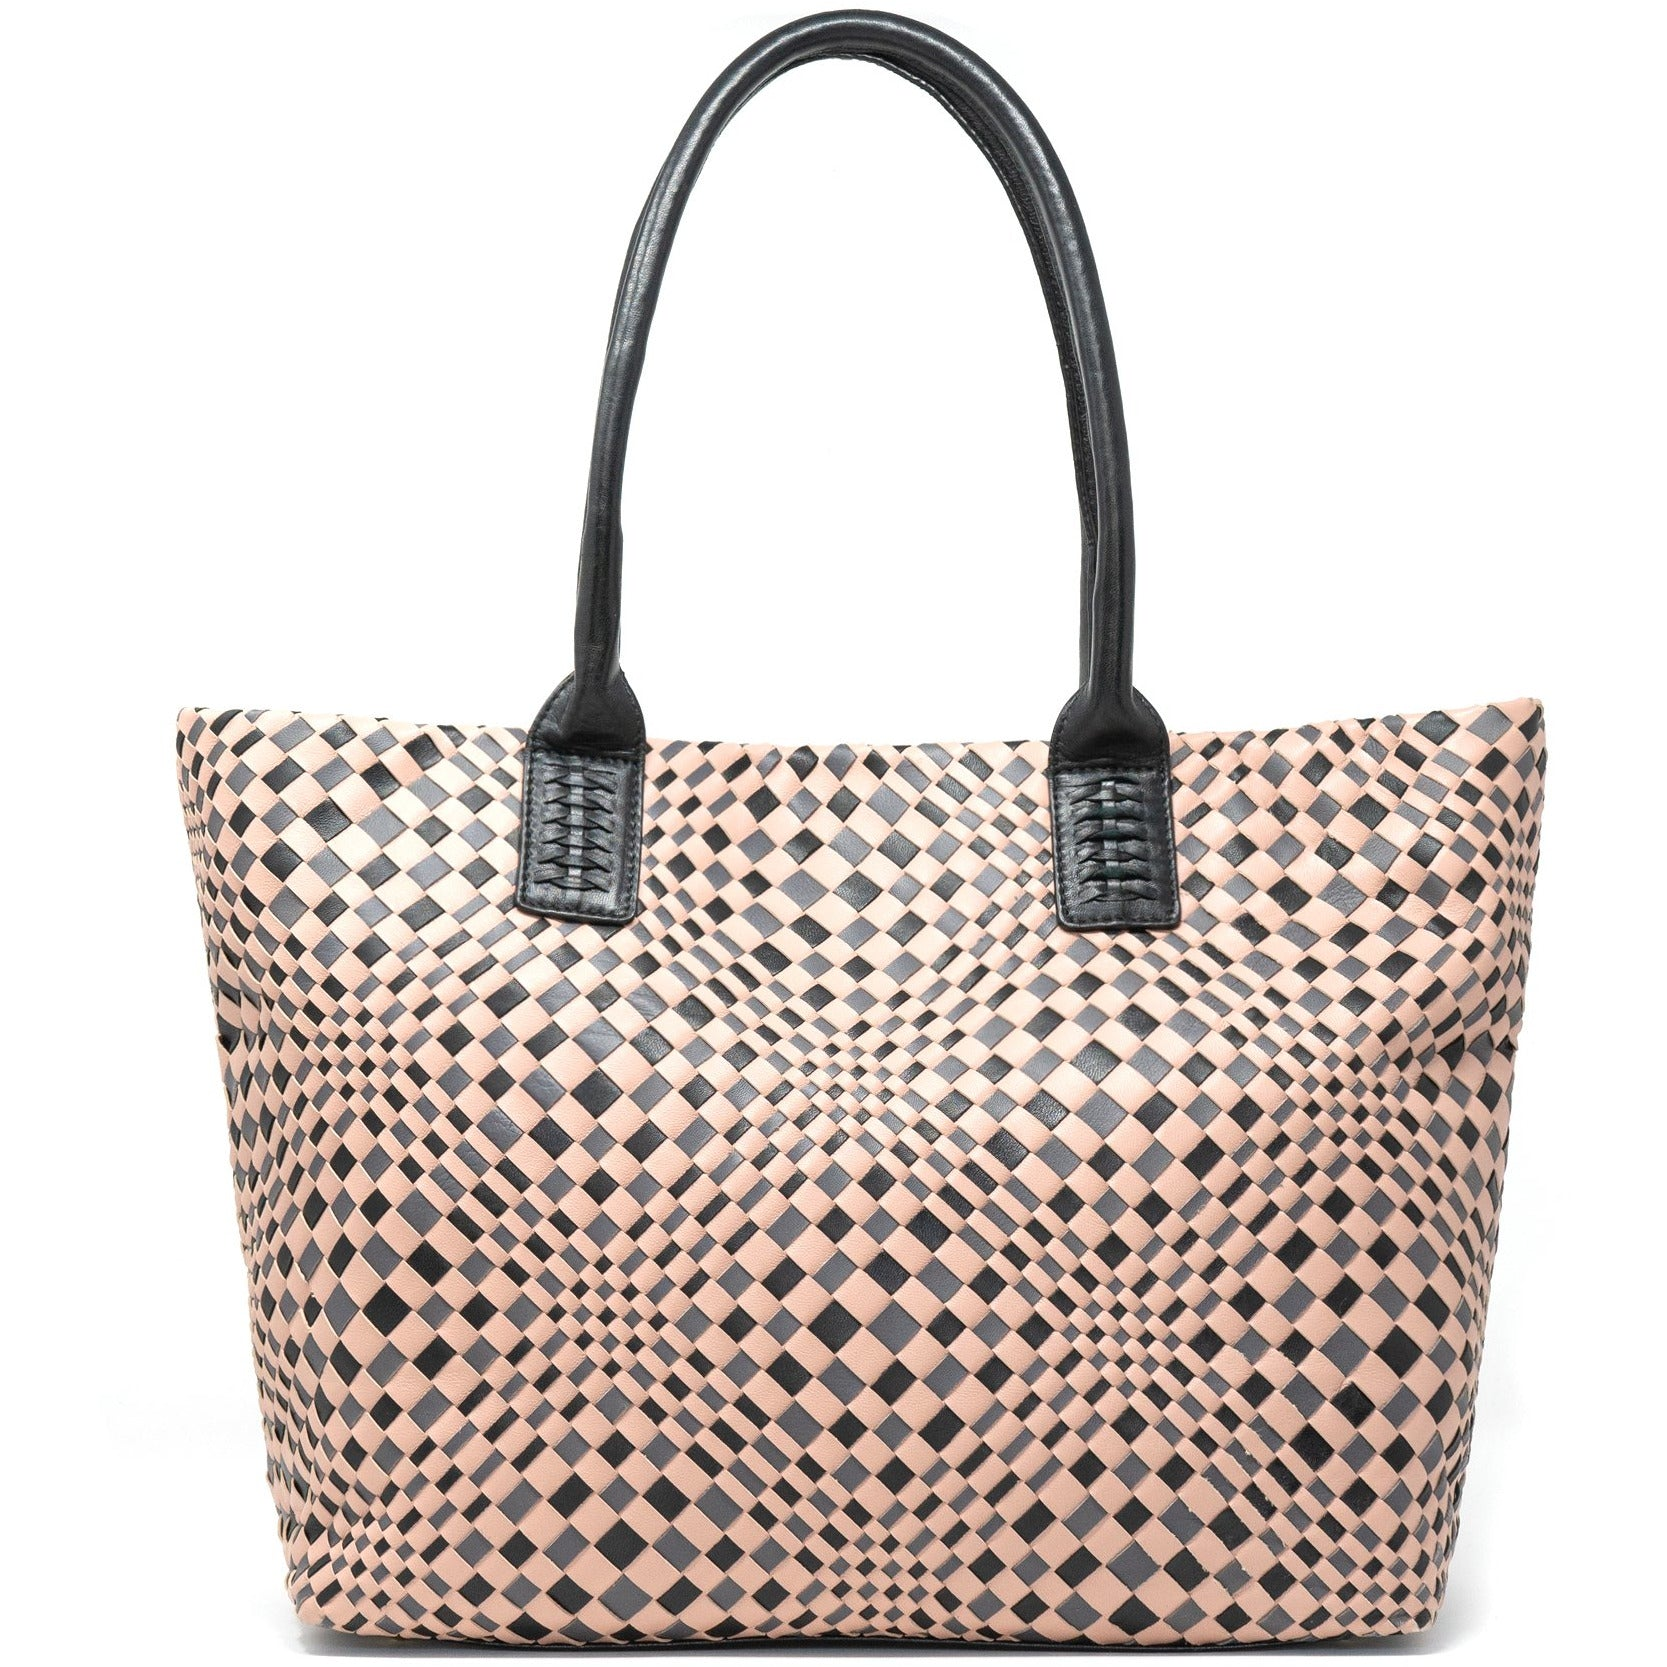 JT320 5168 35 Leather Intrecciato Optical Tote Bag - New Spring Summer 2020 Collection